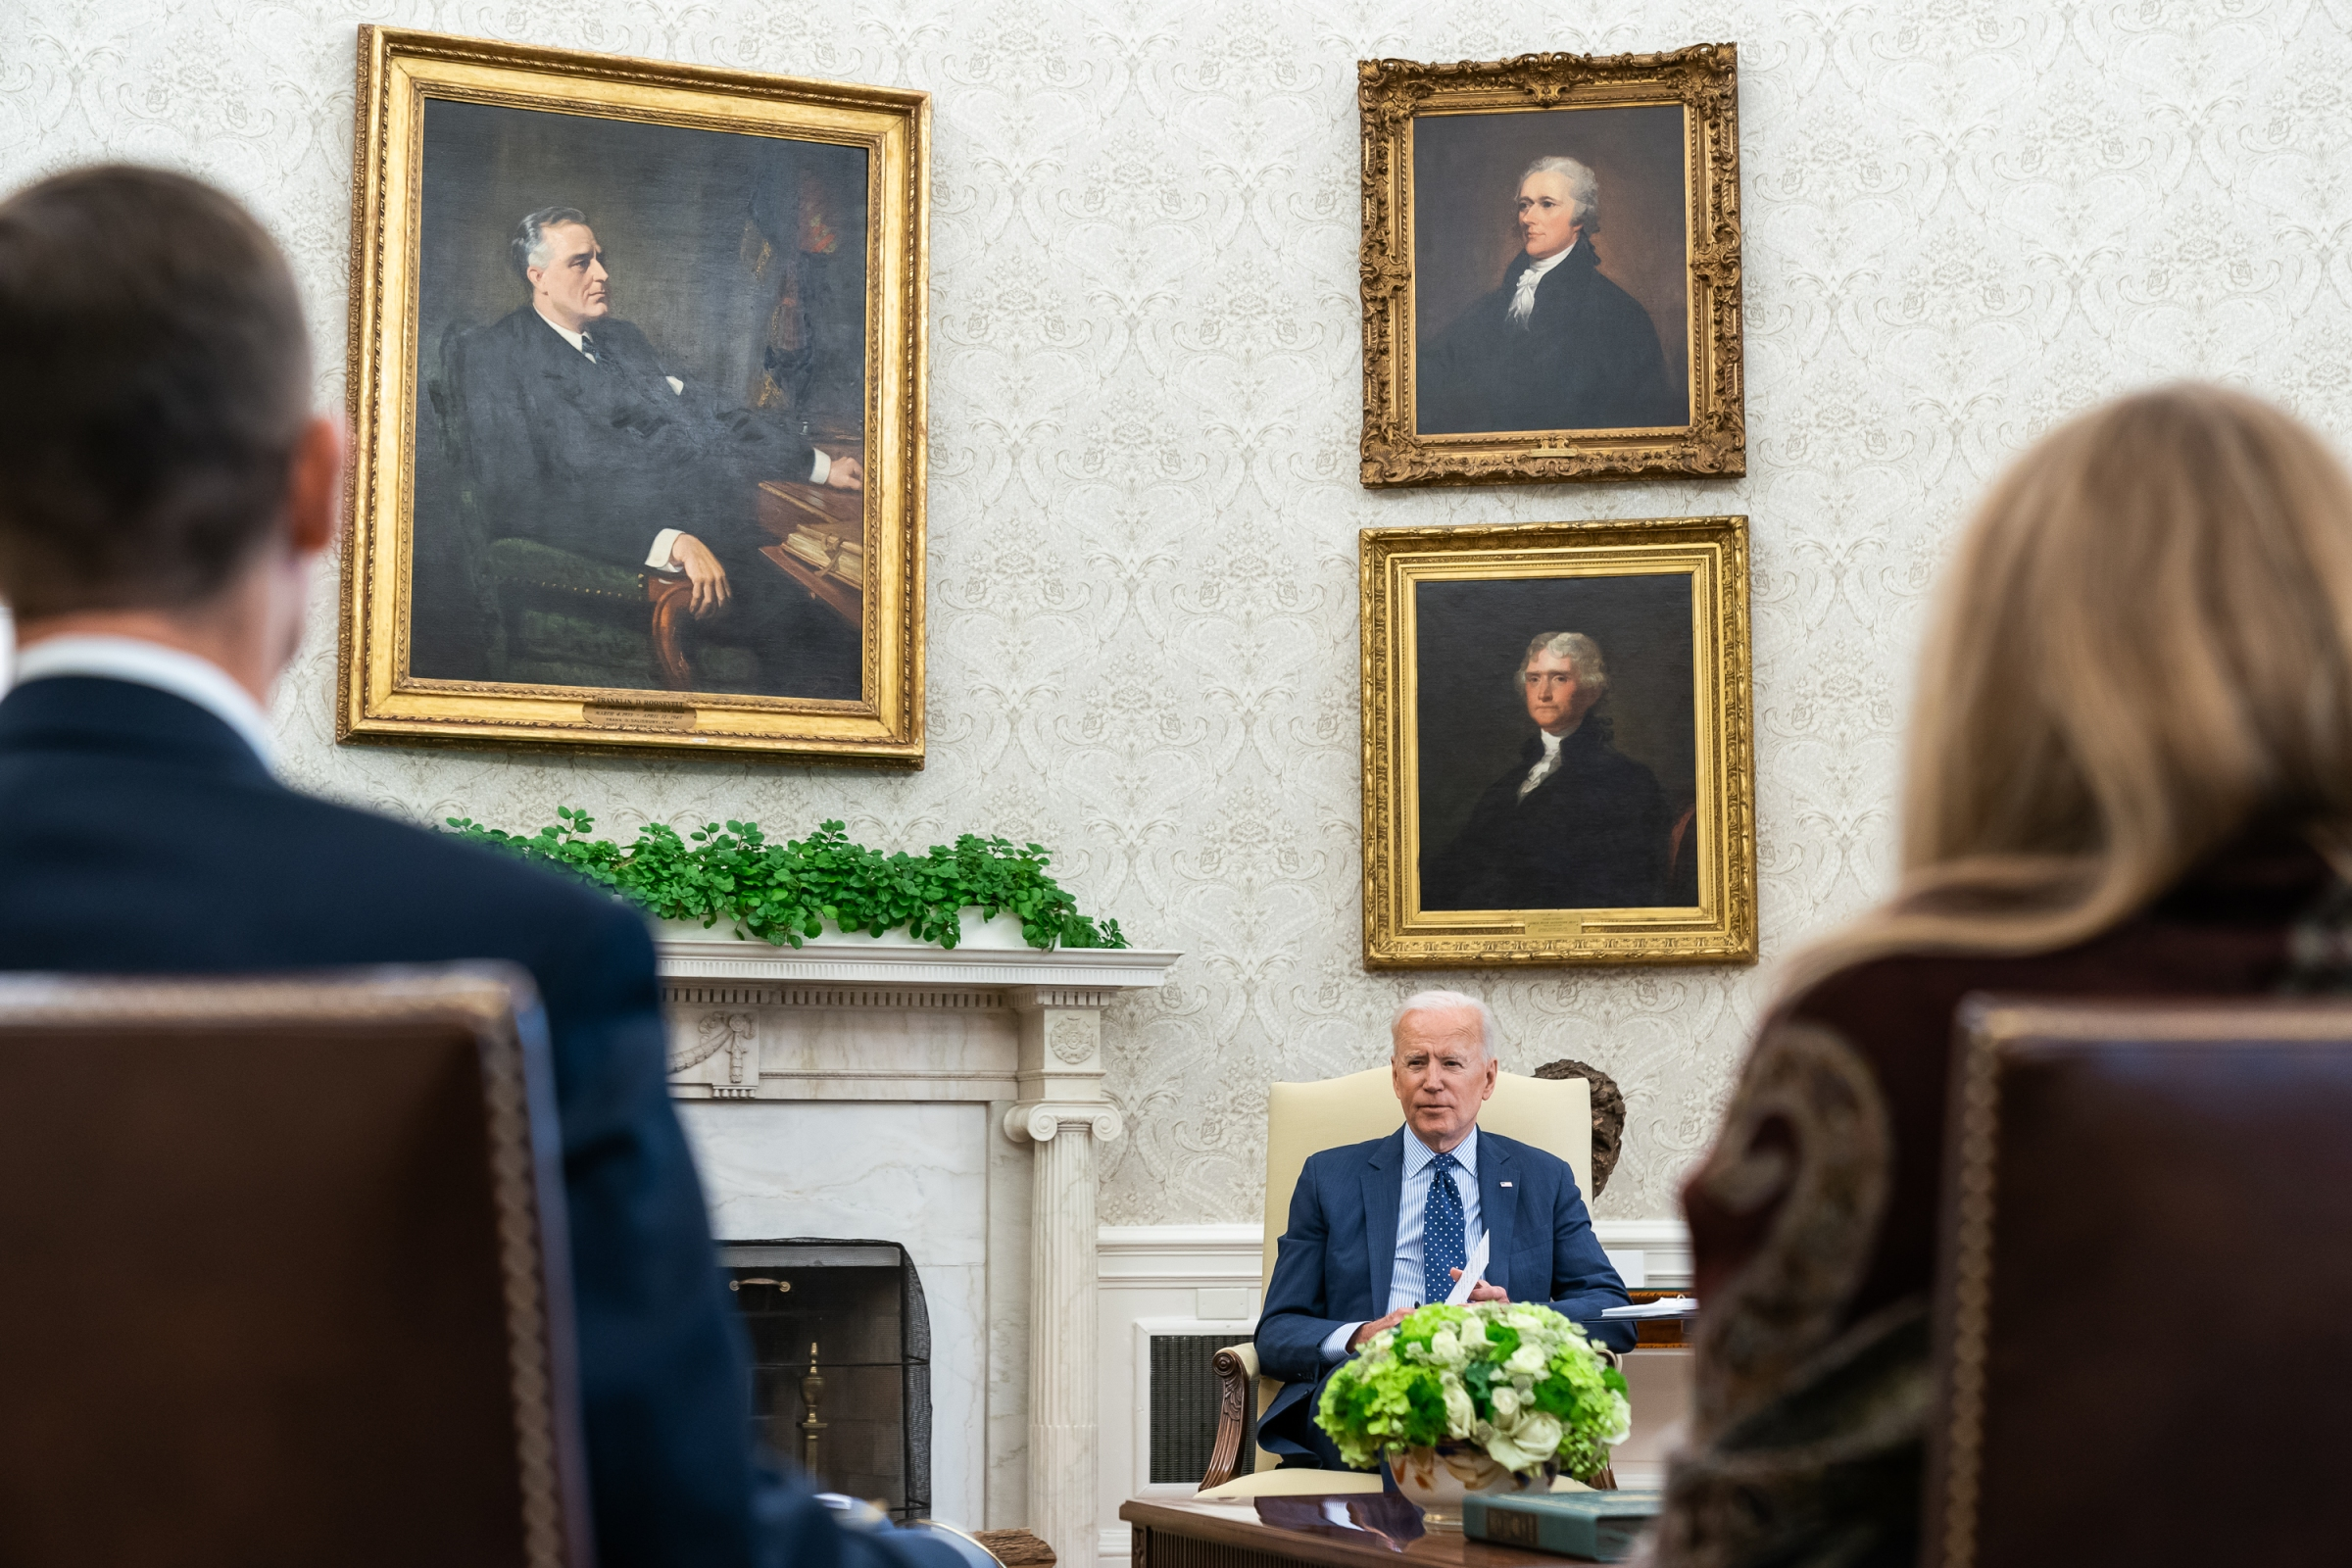 President Joe Biden meets with White House staff in the Oval Office of the White House on Wednesday, June 2, 2021, prior to his meeting with U.S. Senator Shelley Moore Capito, R-WV. (Official White House Photo by Adam Schultz)